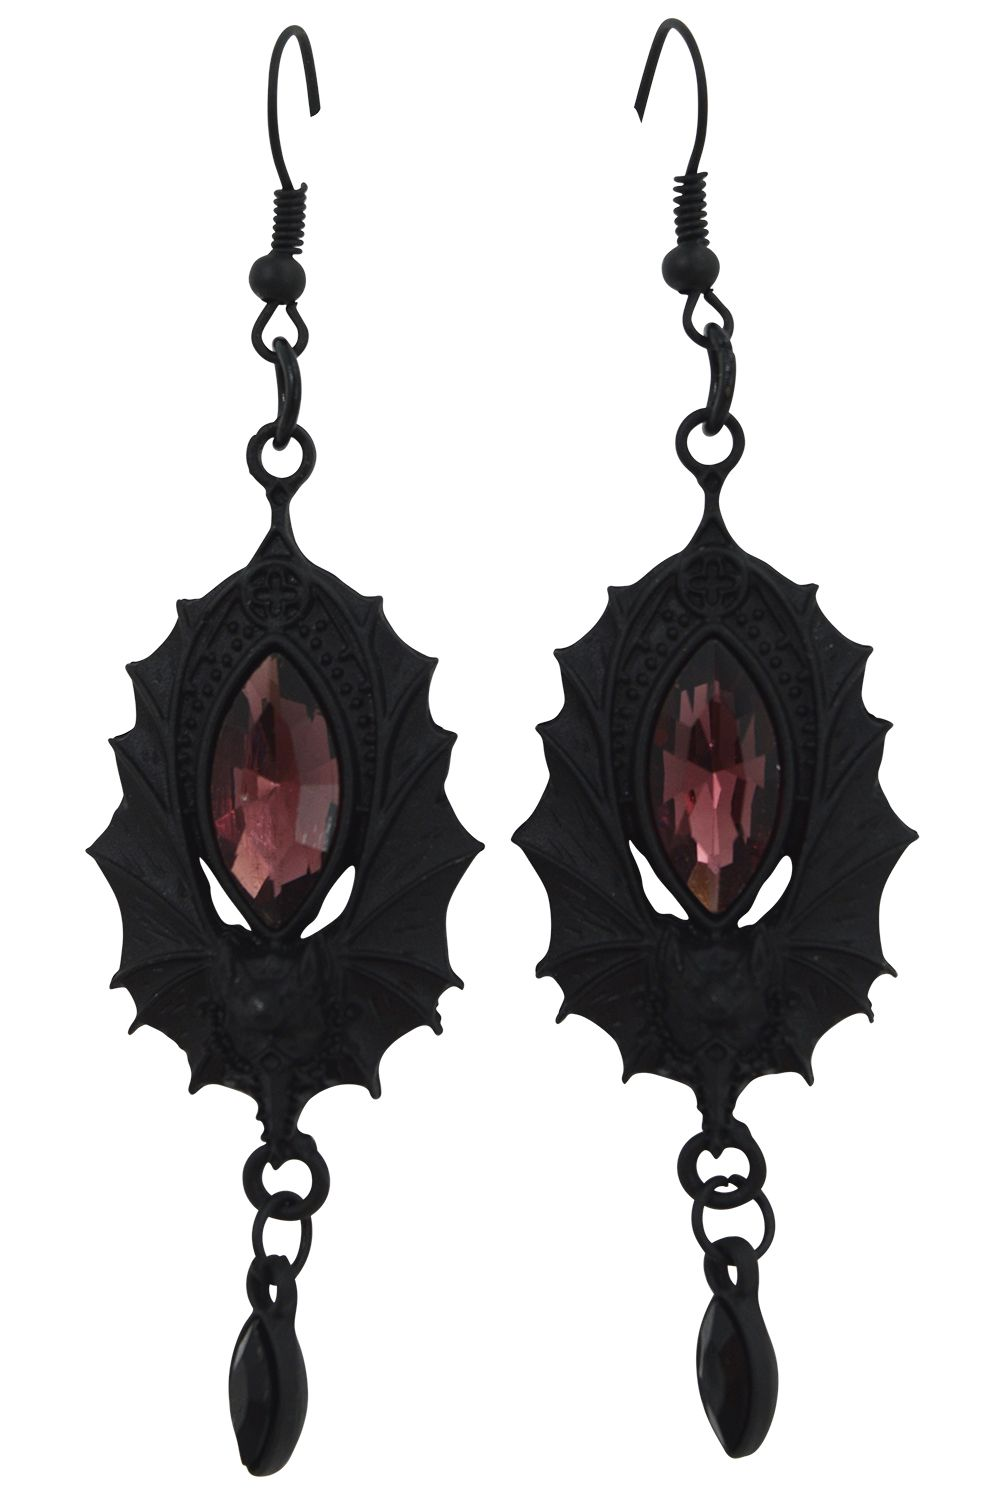 cfc121f35 Beautiful and elegant gothic Bat earrings. Bat wings are holding a magical  glass stone. Bat magic earrings in wine and black stones.